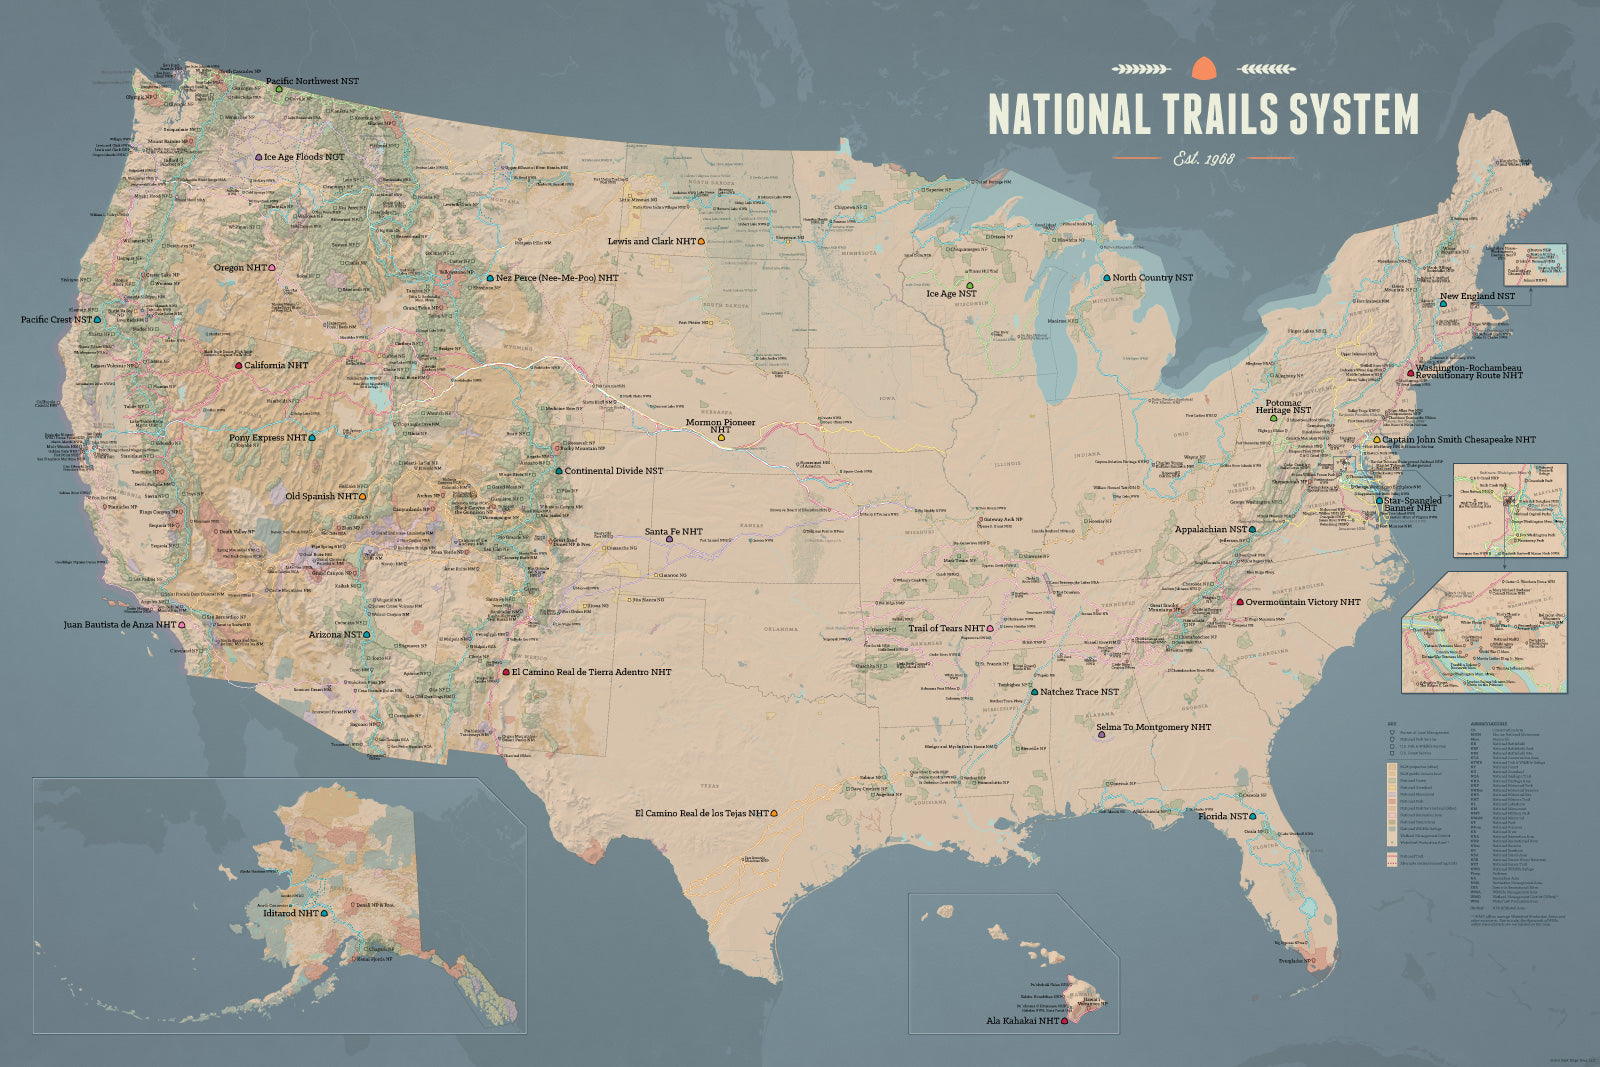 usa national trails system map poster tan slate blue